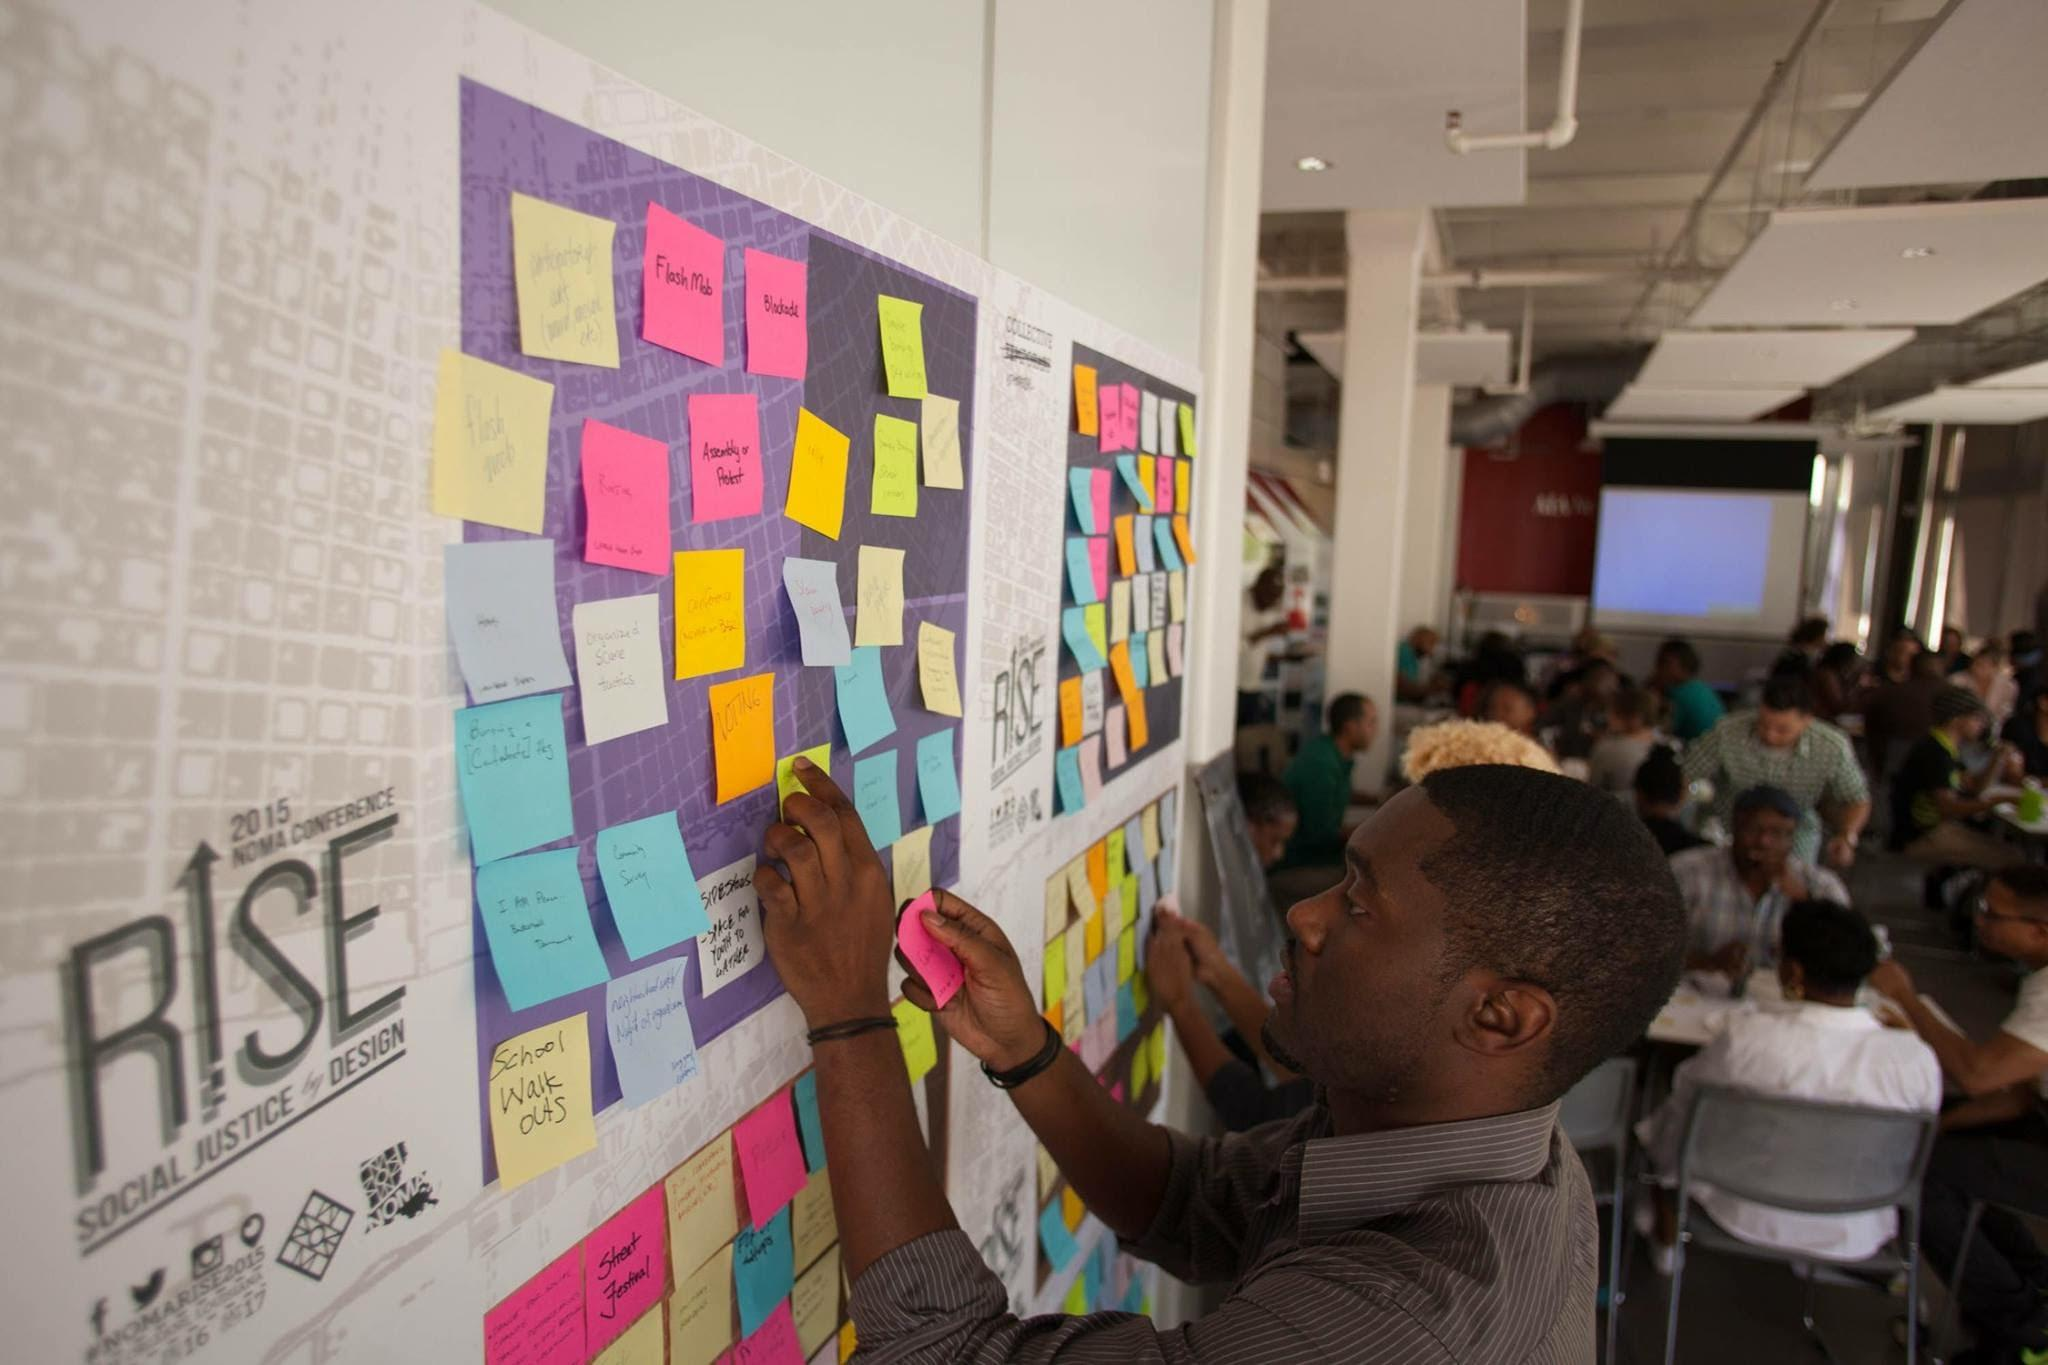 Bryan C Lee Jr. puts up post-it notes at a Design as Protest workshop in New Orleans. Design as Protest brings together artists, architects, and designers to address social injustices.